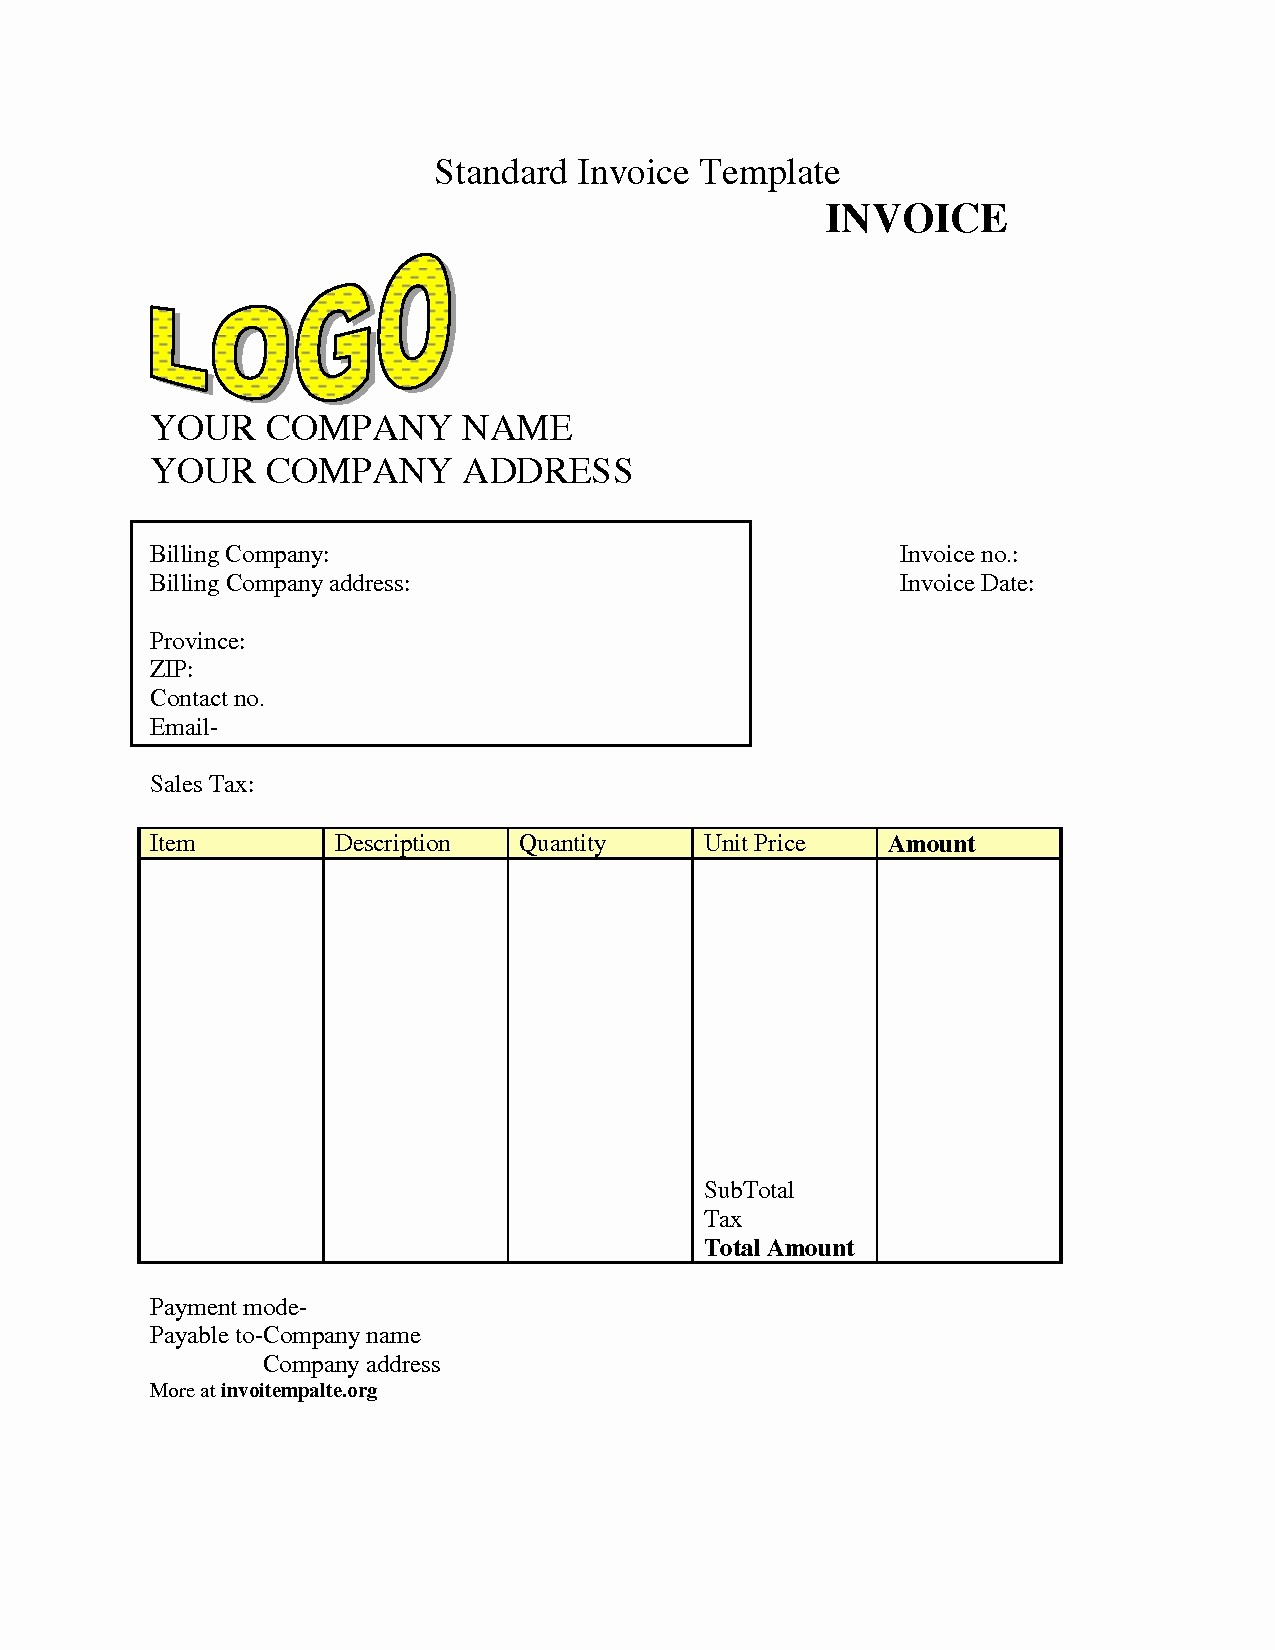 Free Templates for Billing Invoices Best Of Invoice Template Download Free Invoice Template Ideas